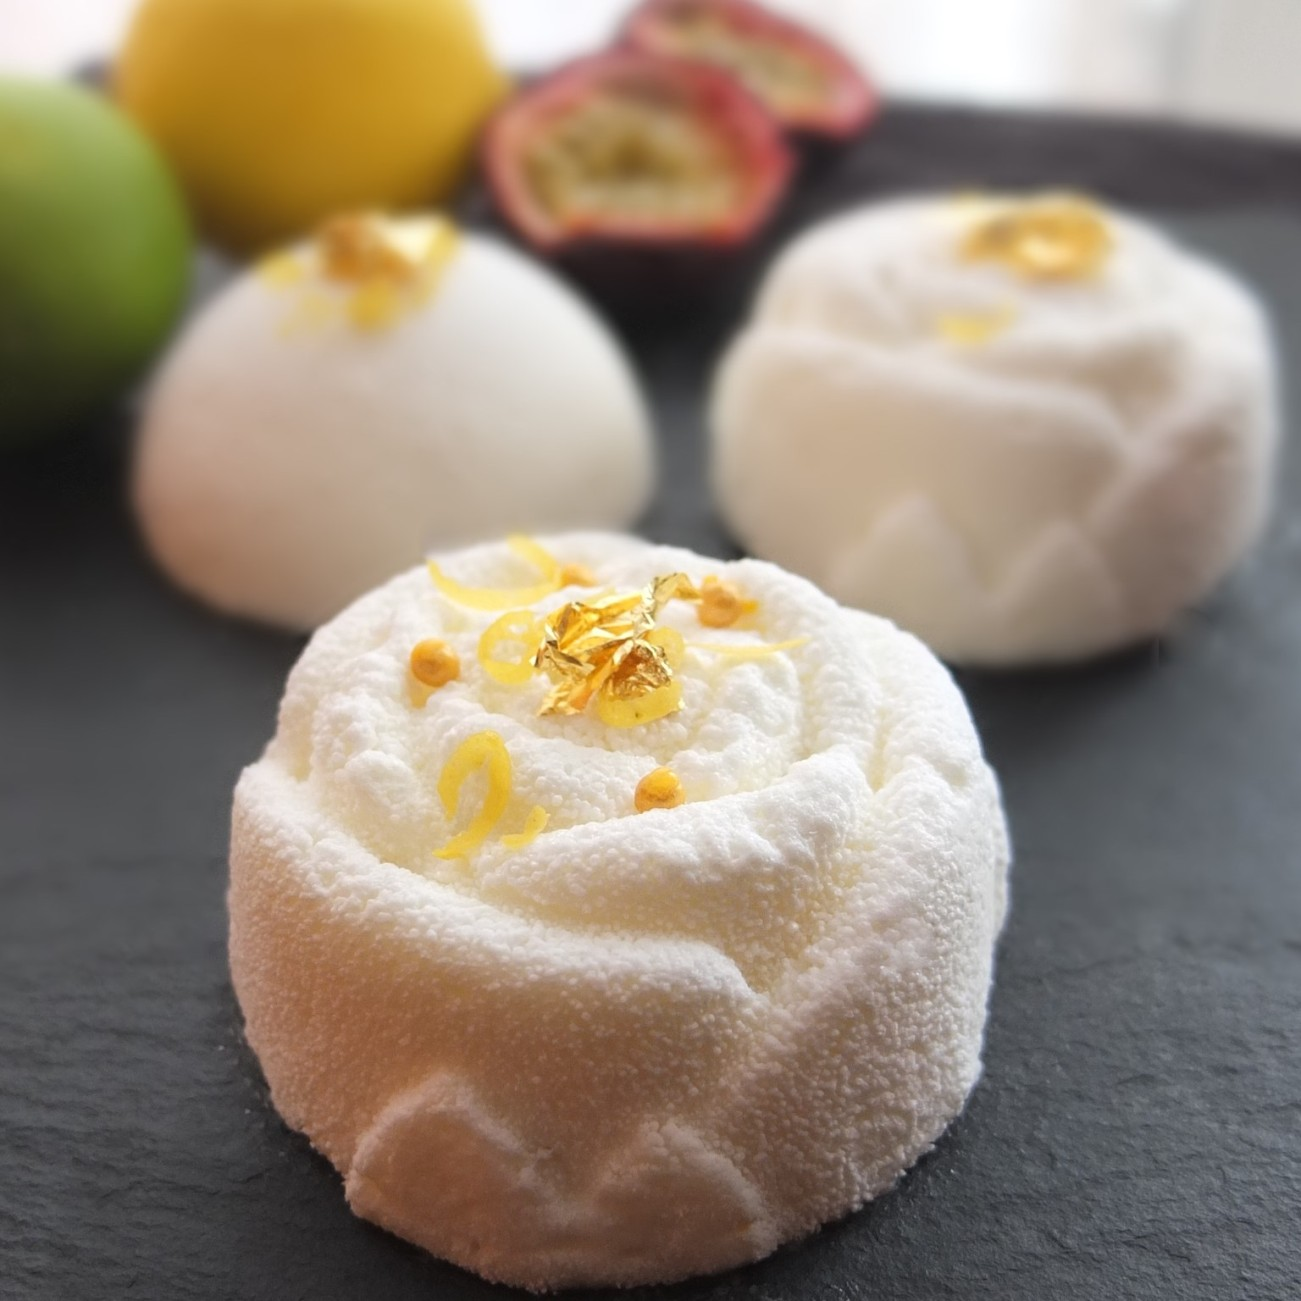 Citrus passion: lemon-lime passionfruit mousse cakes